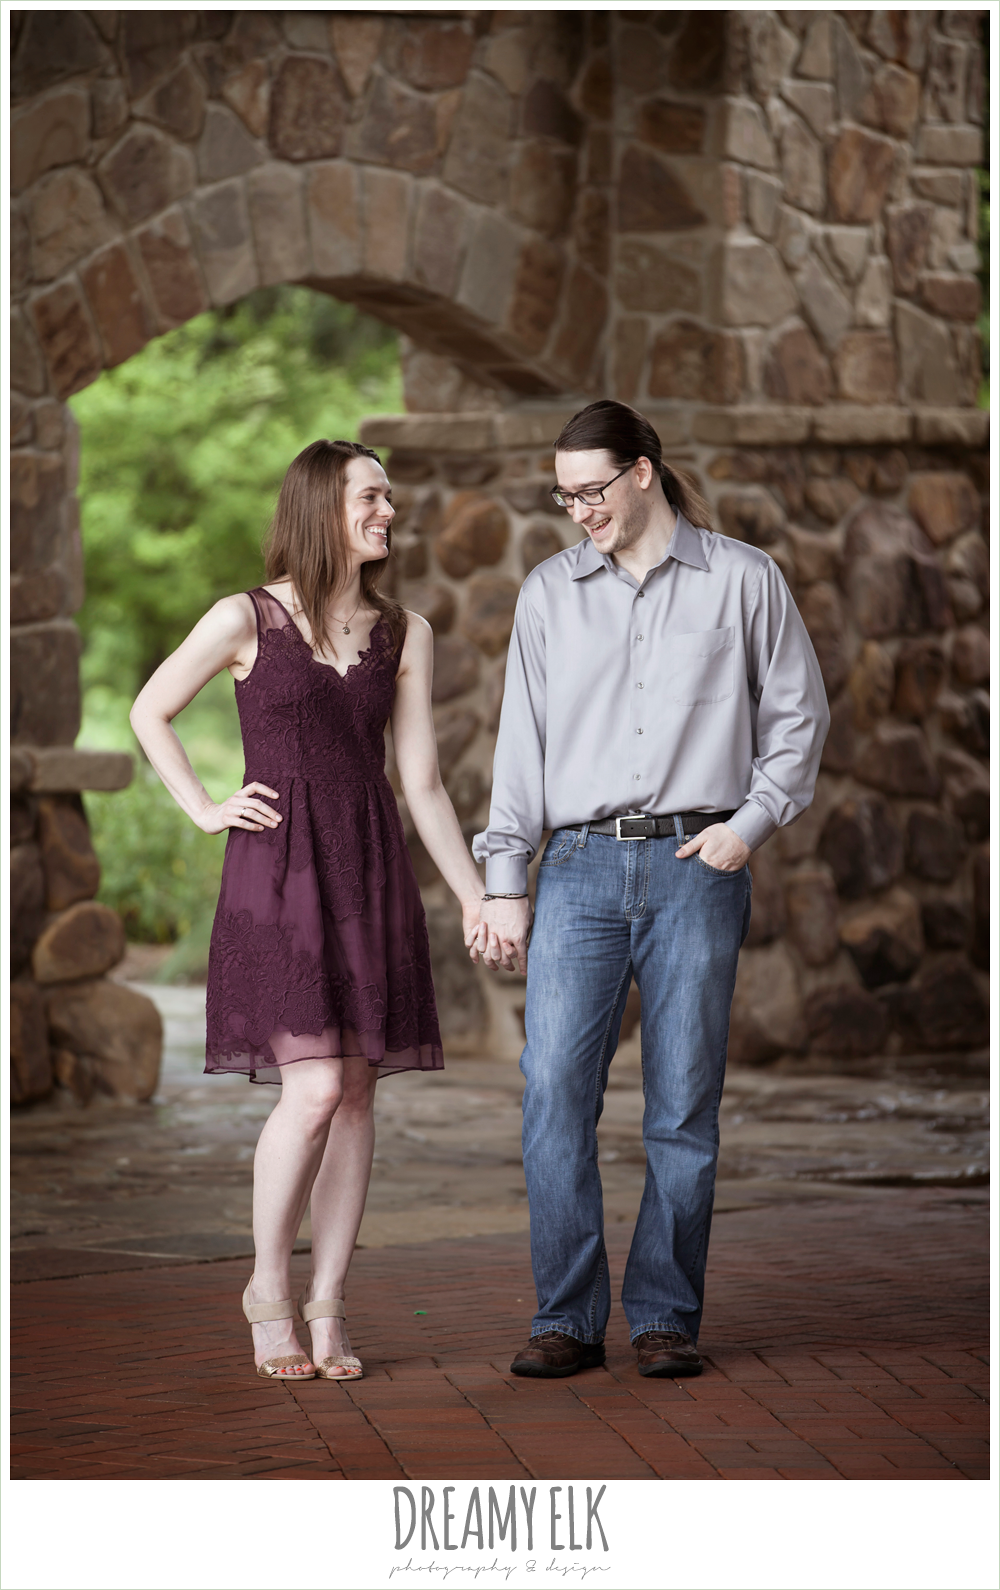 the woodlands, texas, spring outdoor engagement photo {dreamy elk photography and design}